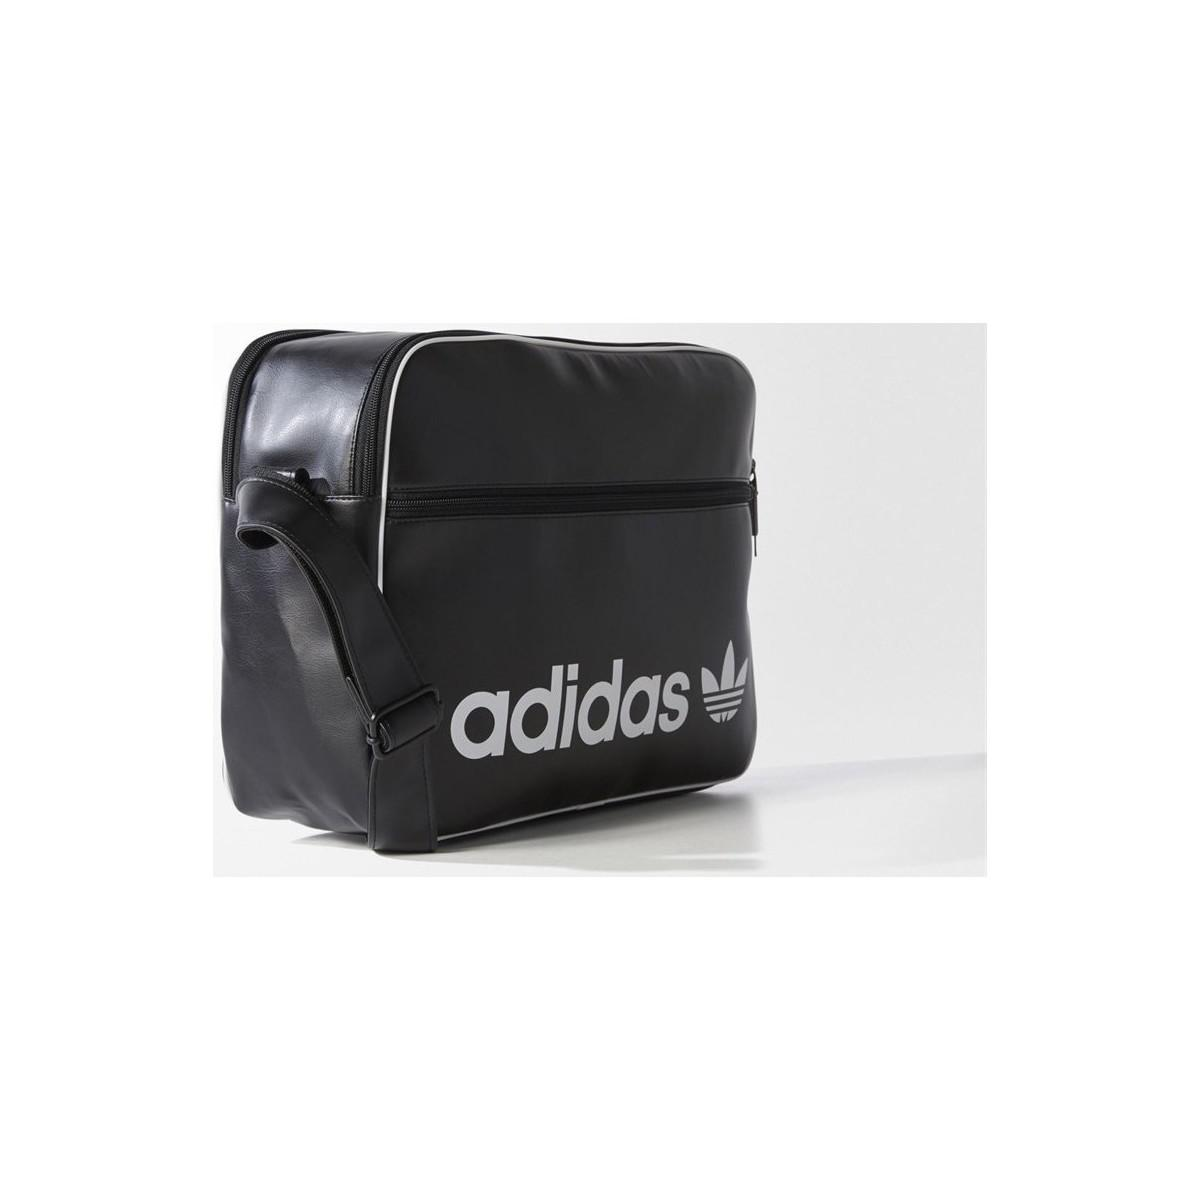 6092b1dbfc Adidas Originals - Black Vintage Airliner Bag Women s Shoulder Bag In  Multicolour - Lyst